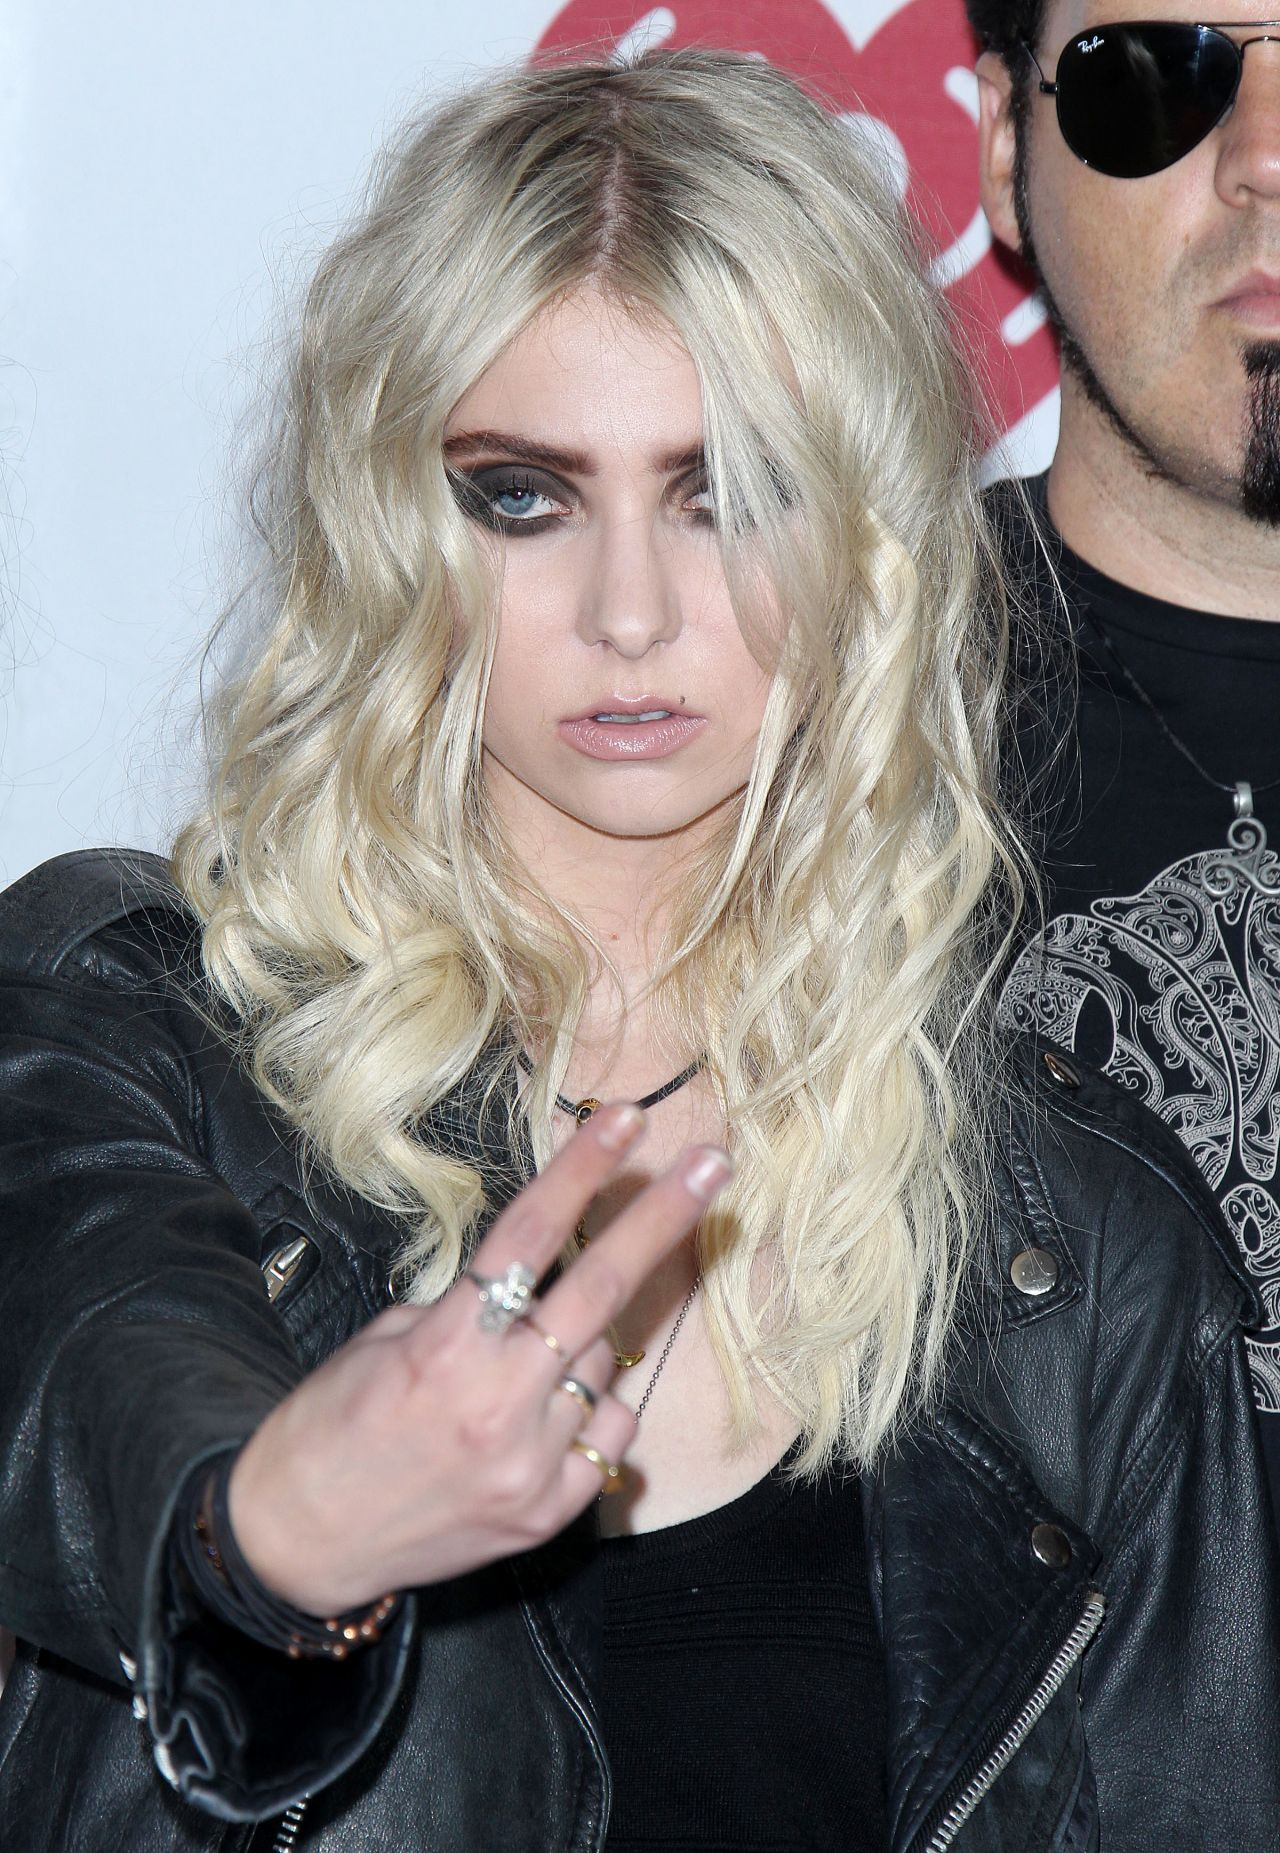 Taylor Momsen at 2014 Revolver Golden Gods Awards |Taylor Momsen 2014